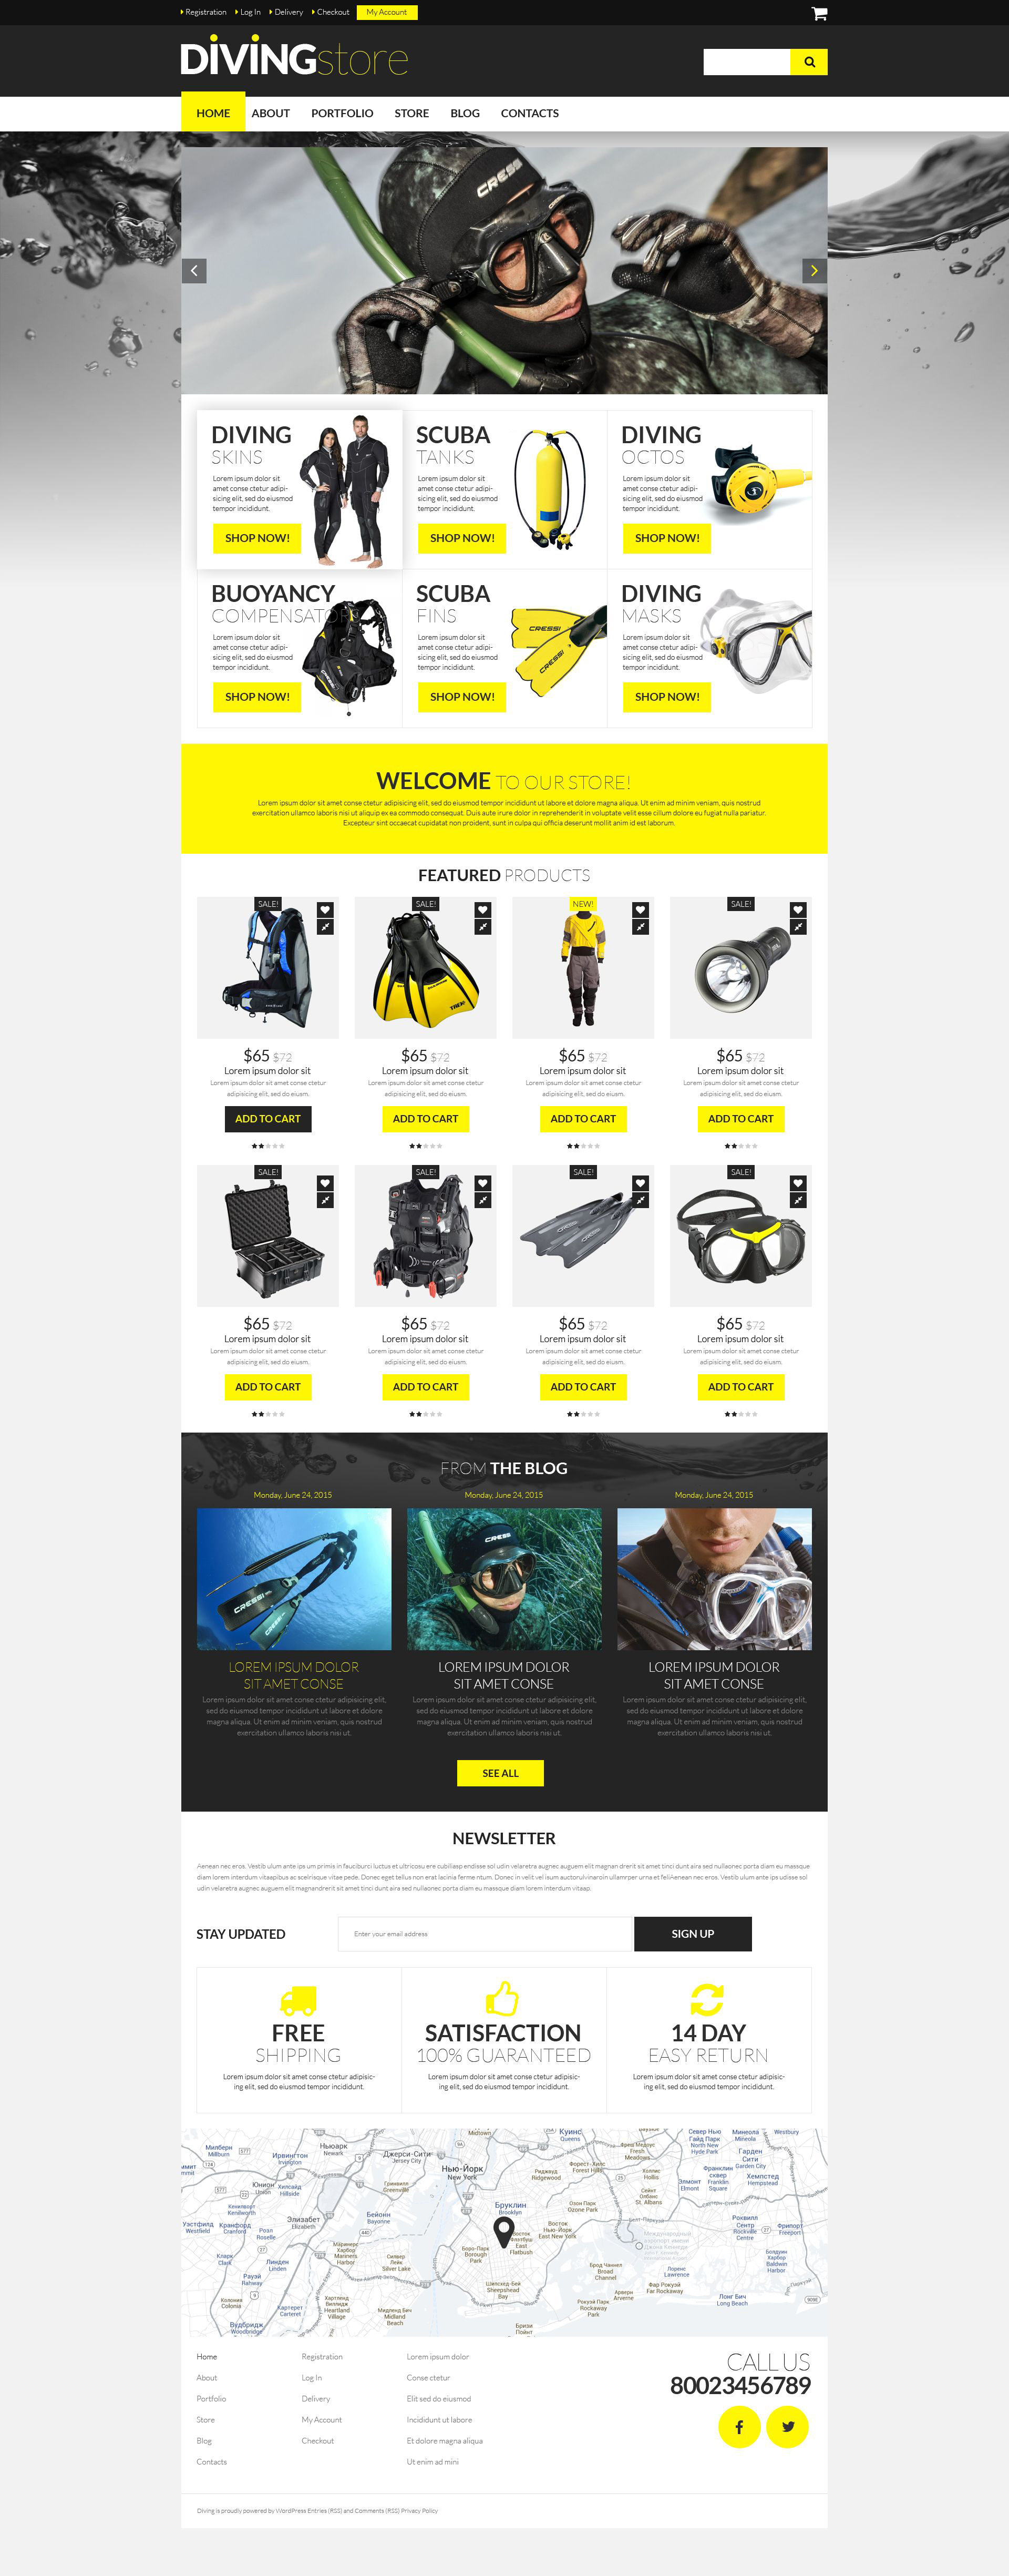 Diving Supplies Store №53437 - скриншот